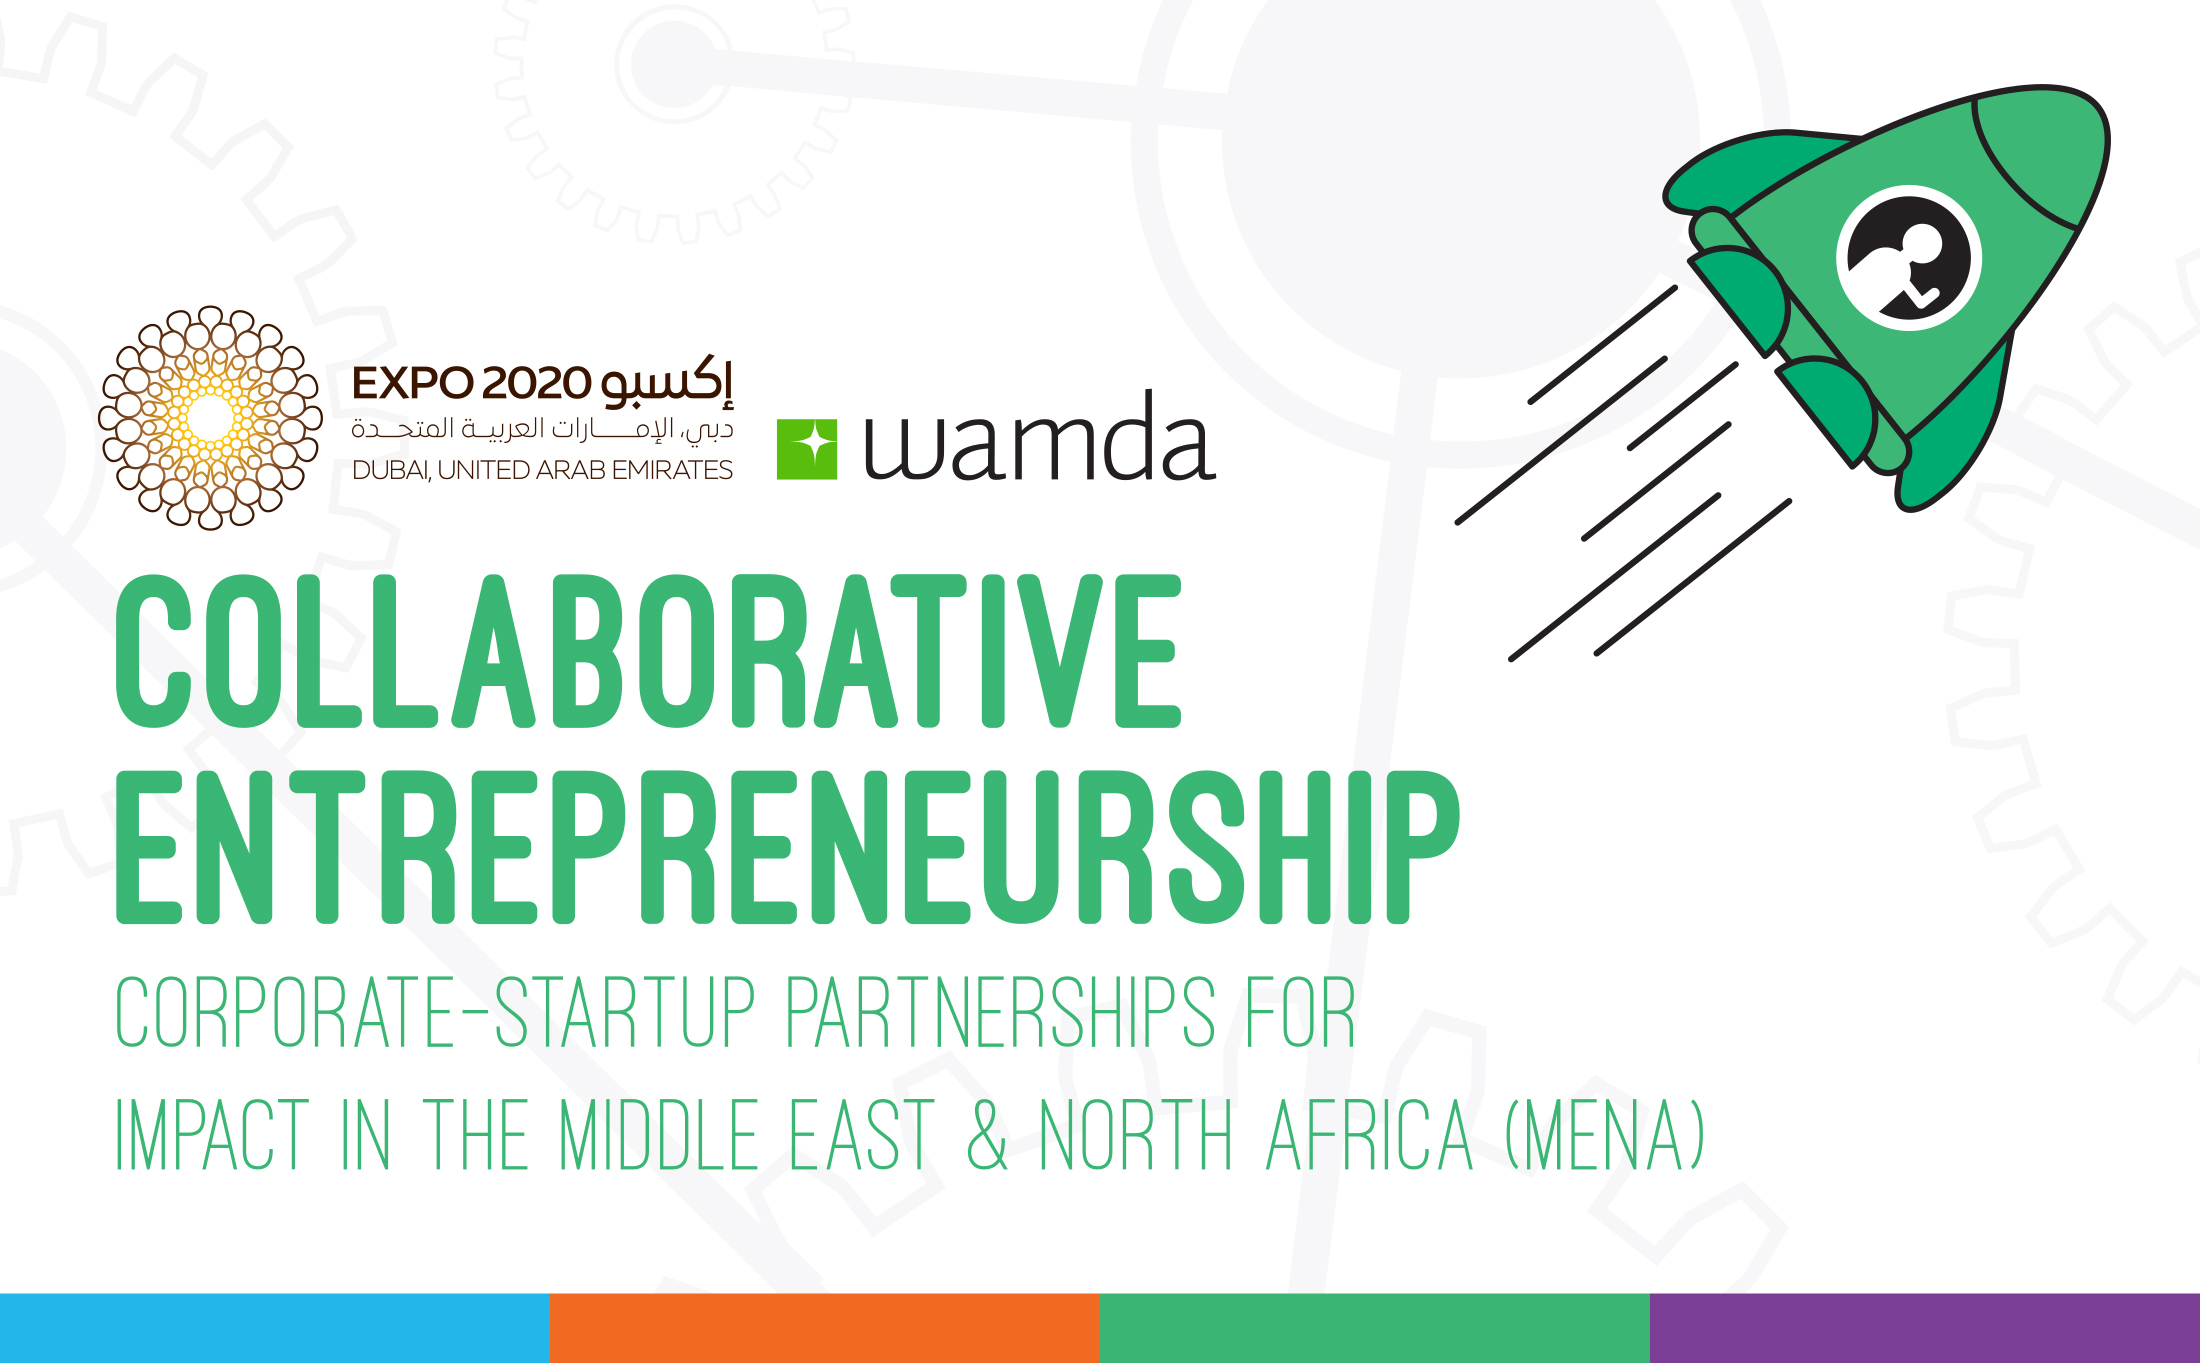 Wamda and Expo 2020 Dubai launch their first report on Collaborative Entrepreneurship [Infographic]